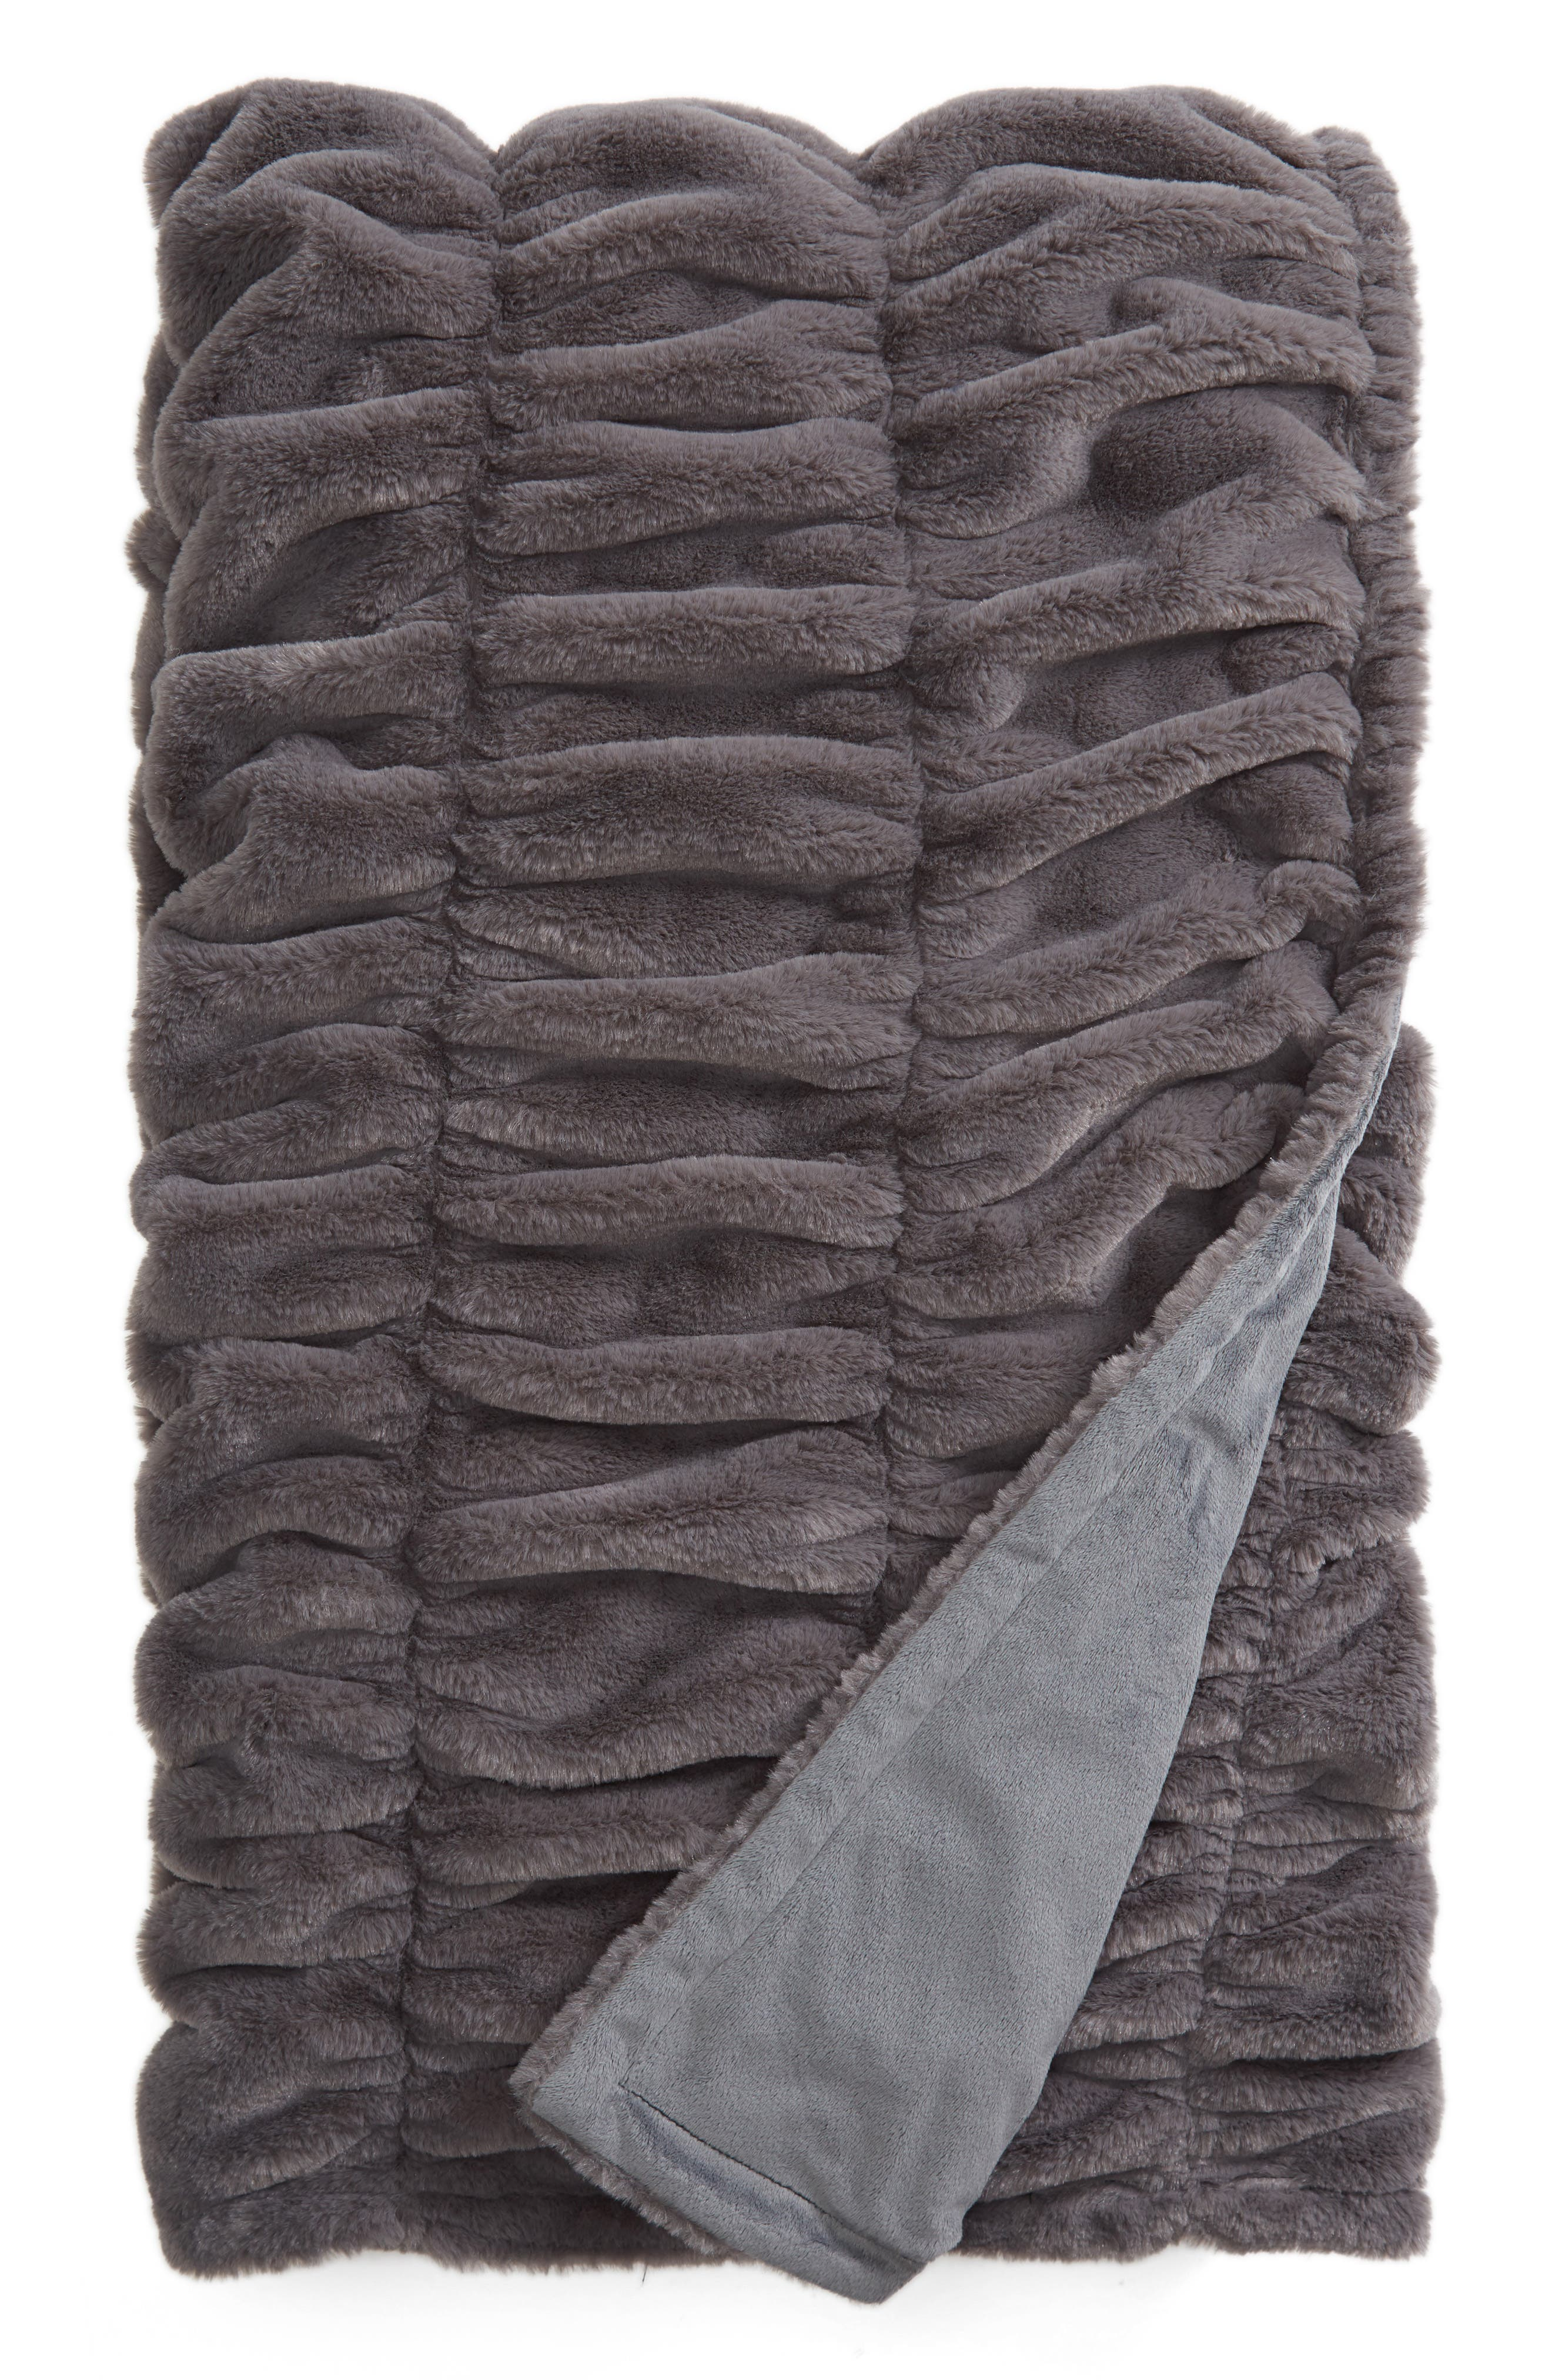 Ruched Faux Fur Throw Blanket,                             Main thumbnail 1, color,                             020